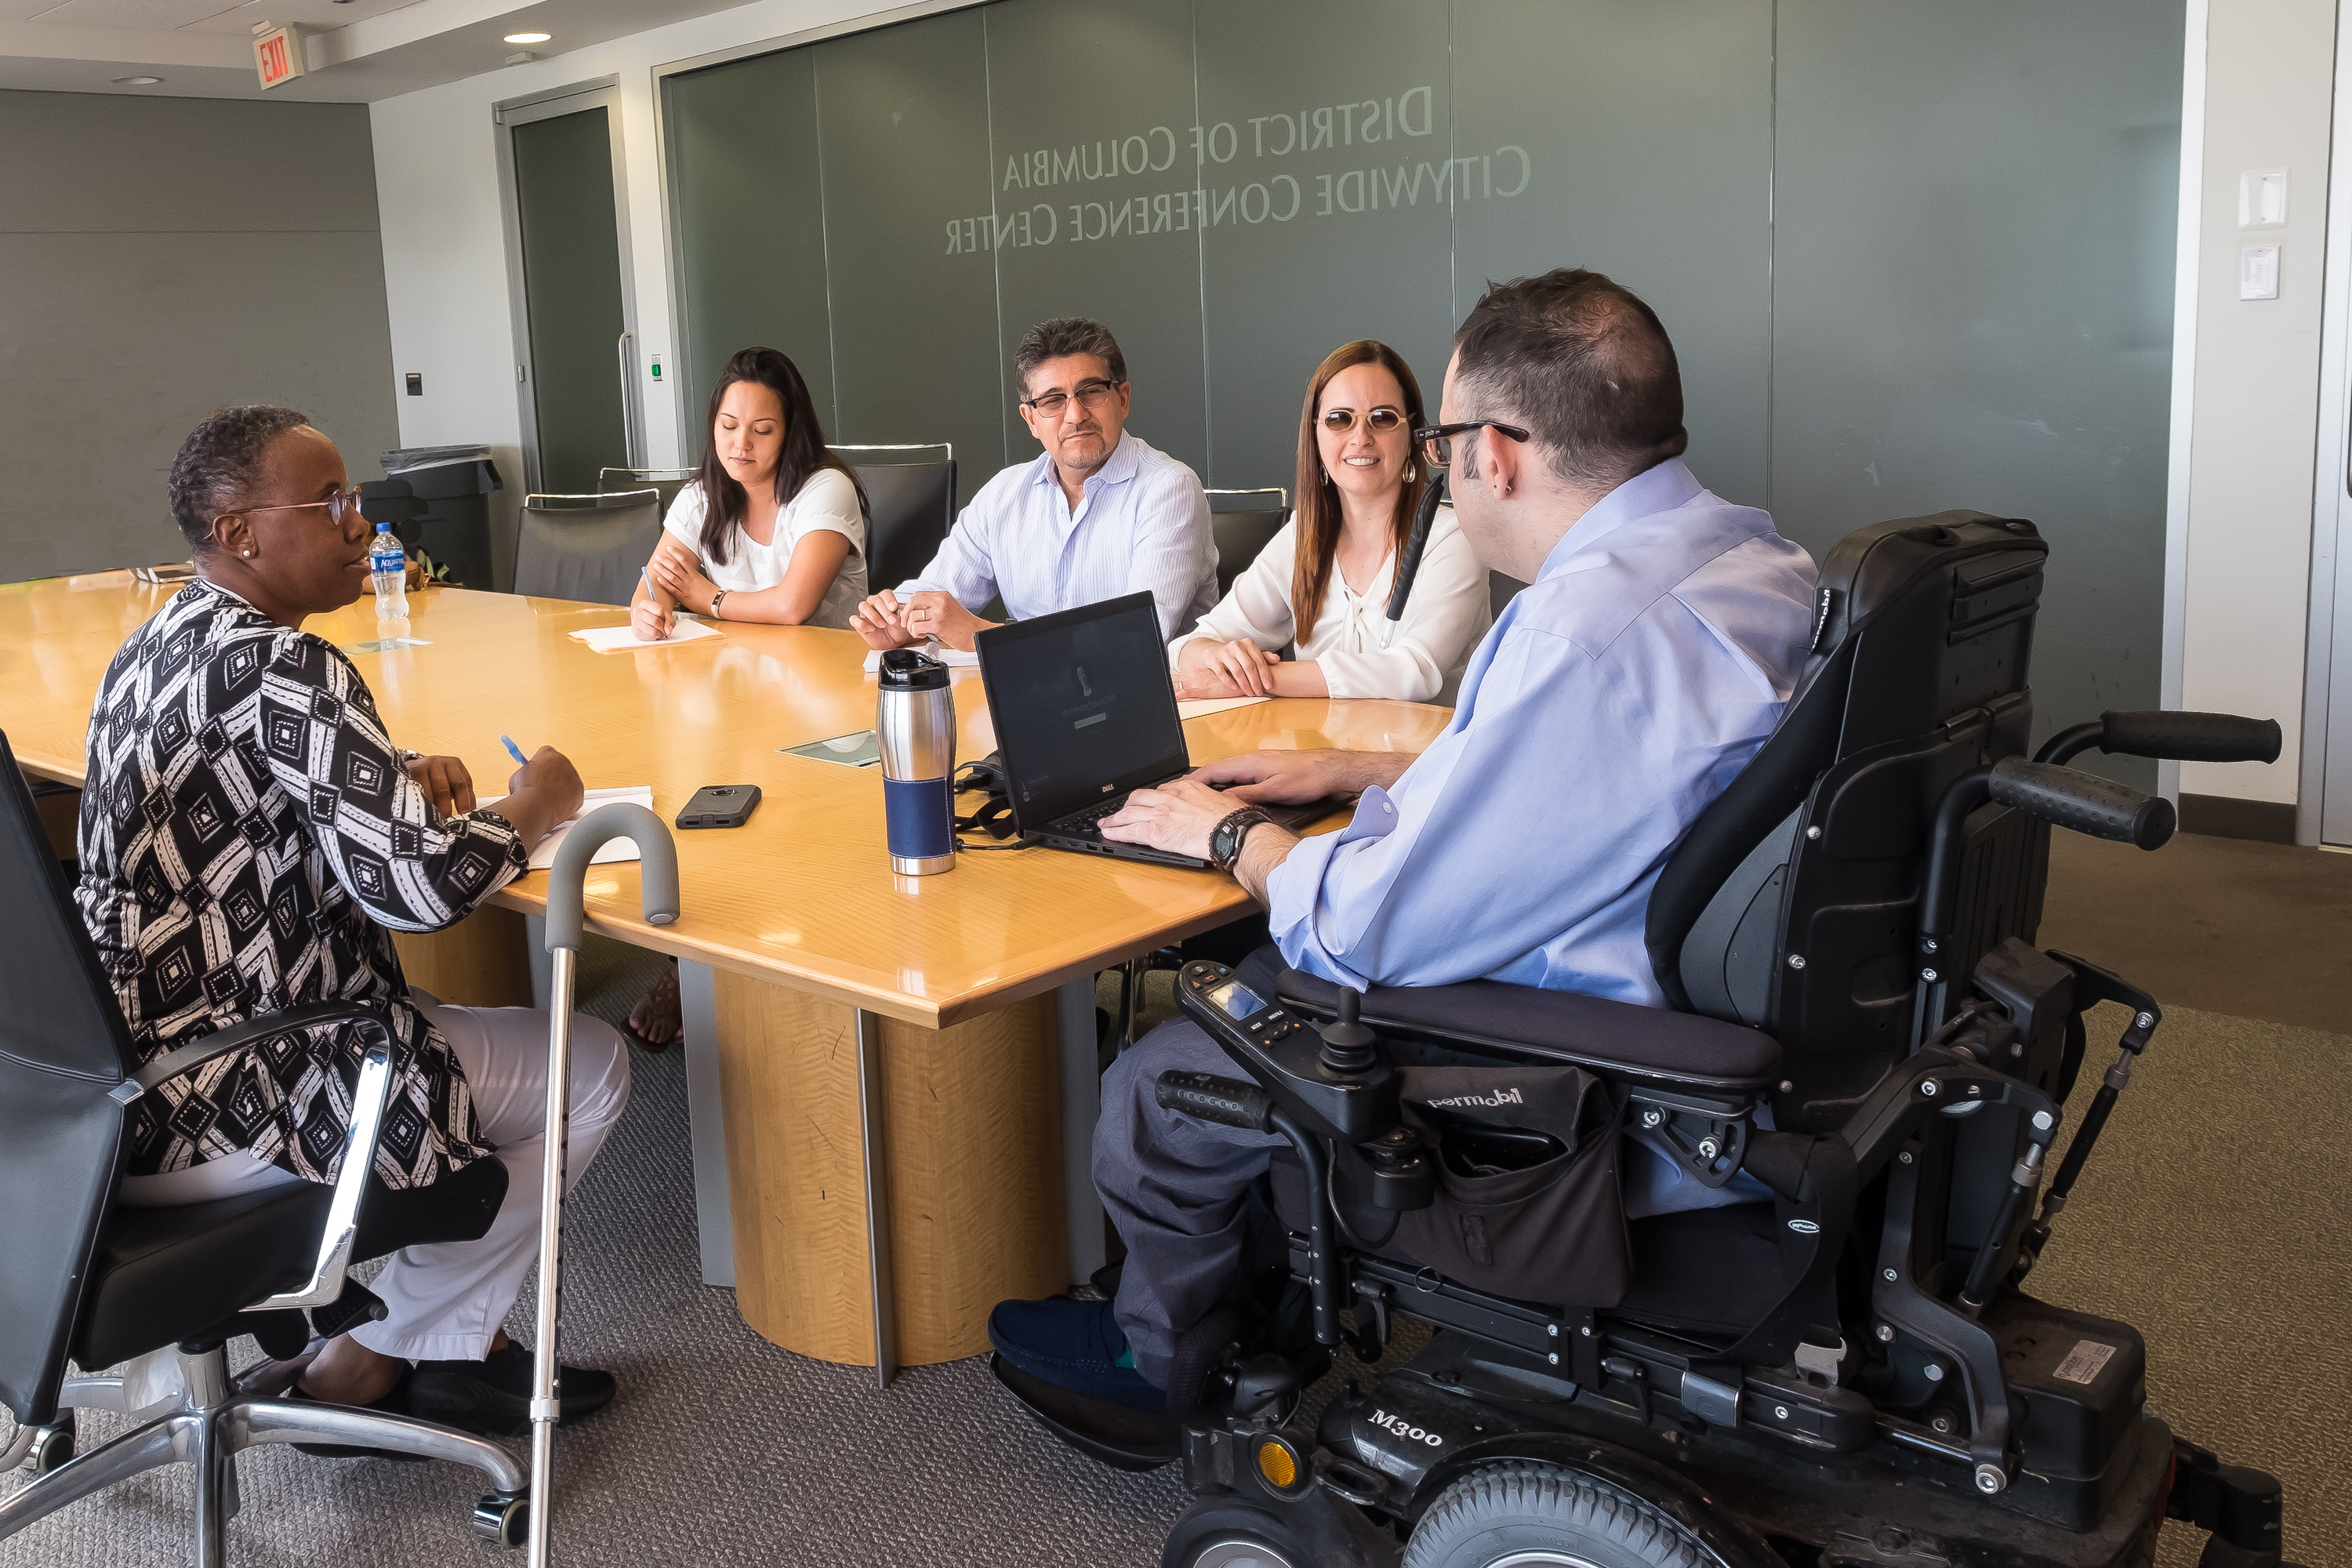 Group of 5 people with and without disabilities meeting around a table in the DC Citywide Conference Center